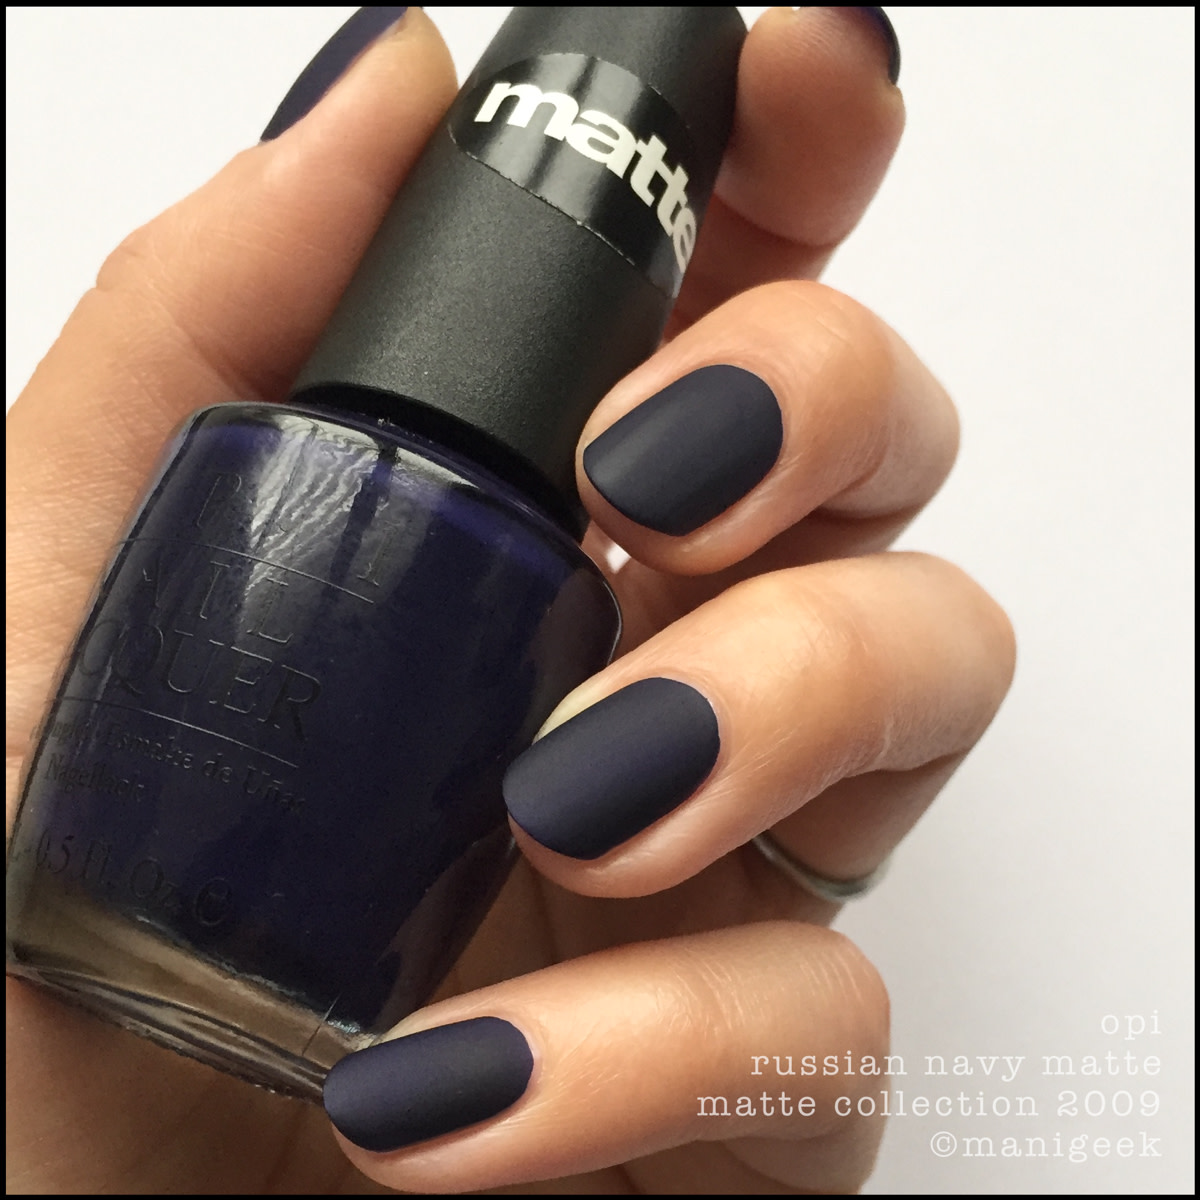 OPI Russian Navy Matte_OPI Matte Collection 2009 Swatches